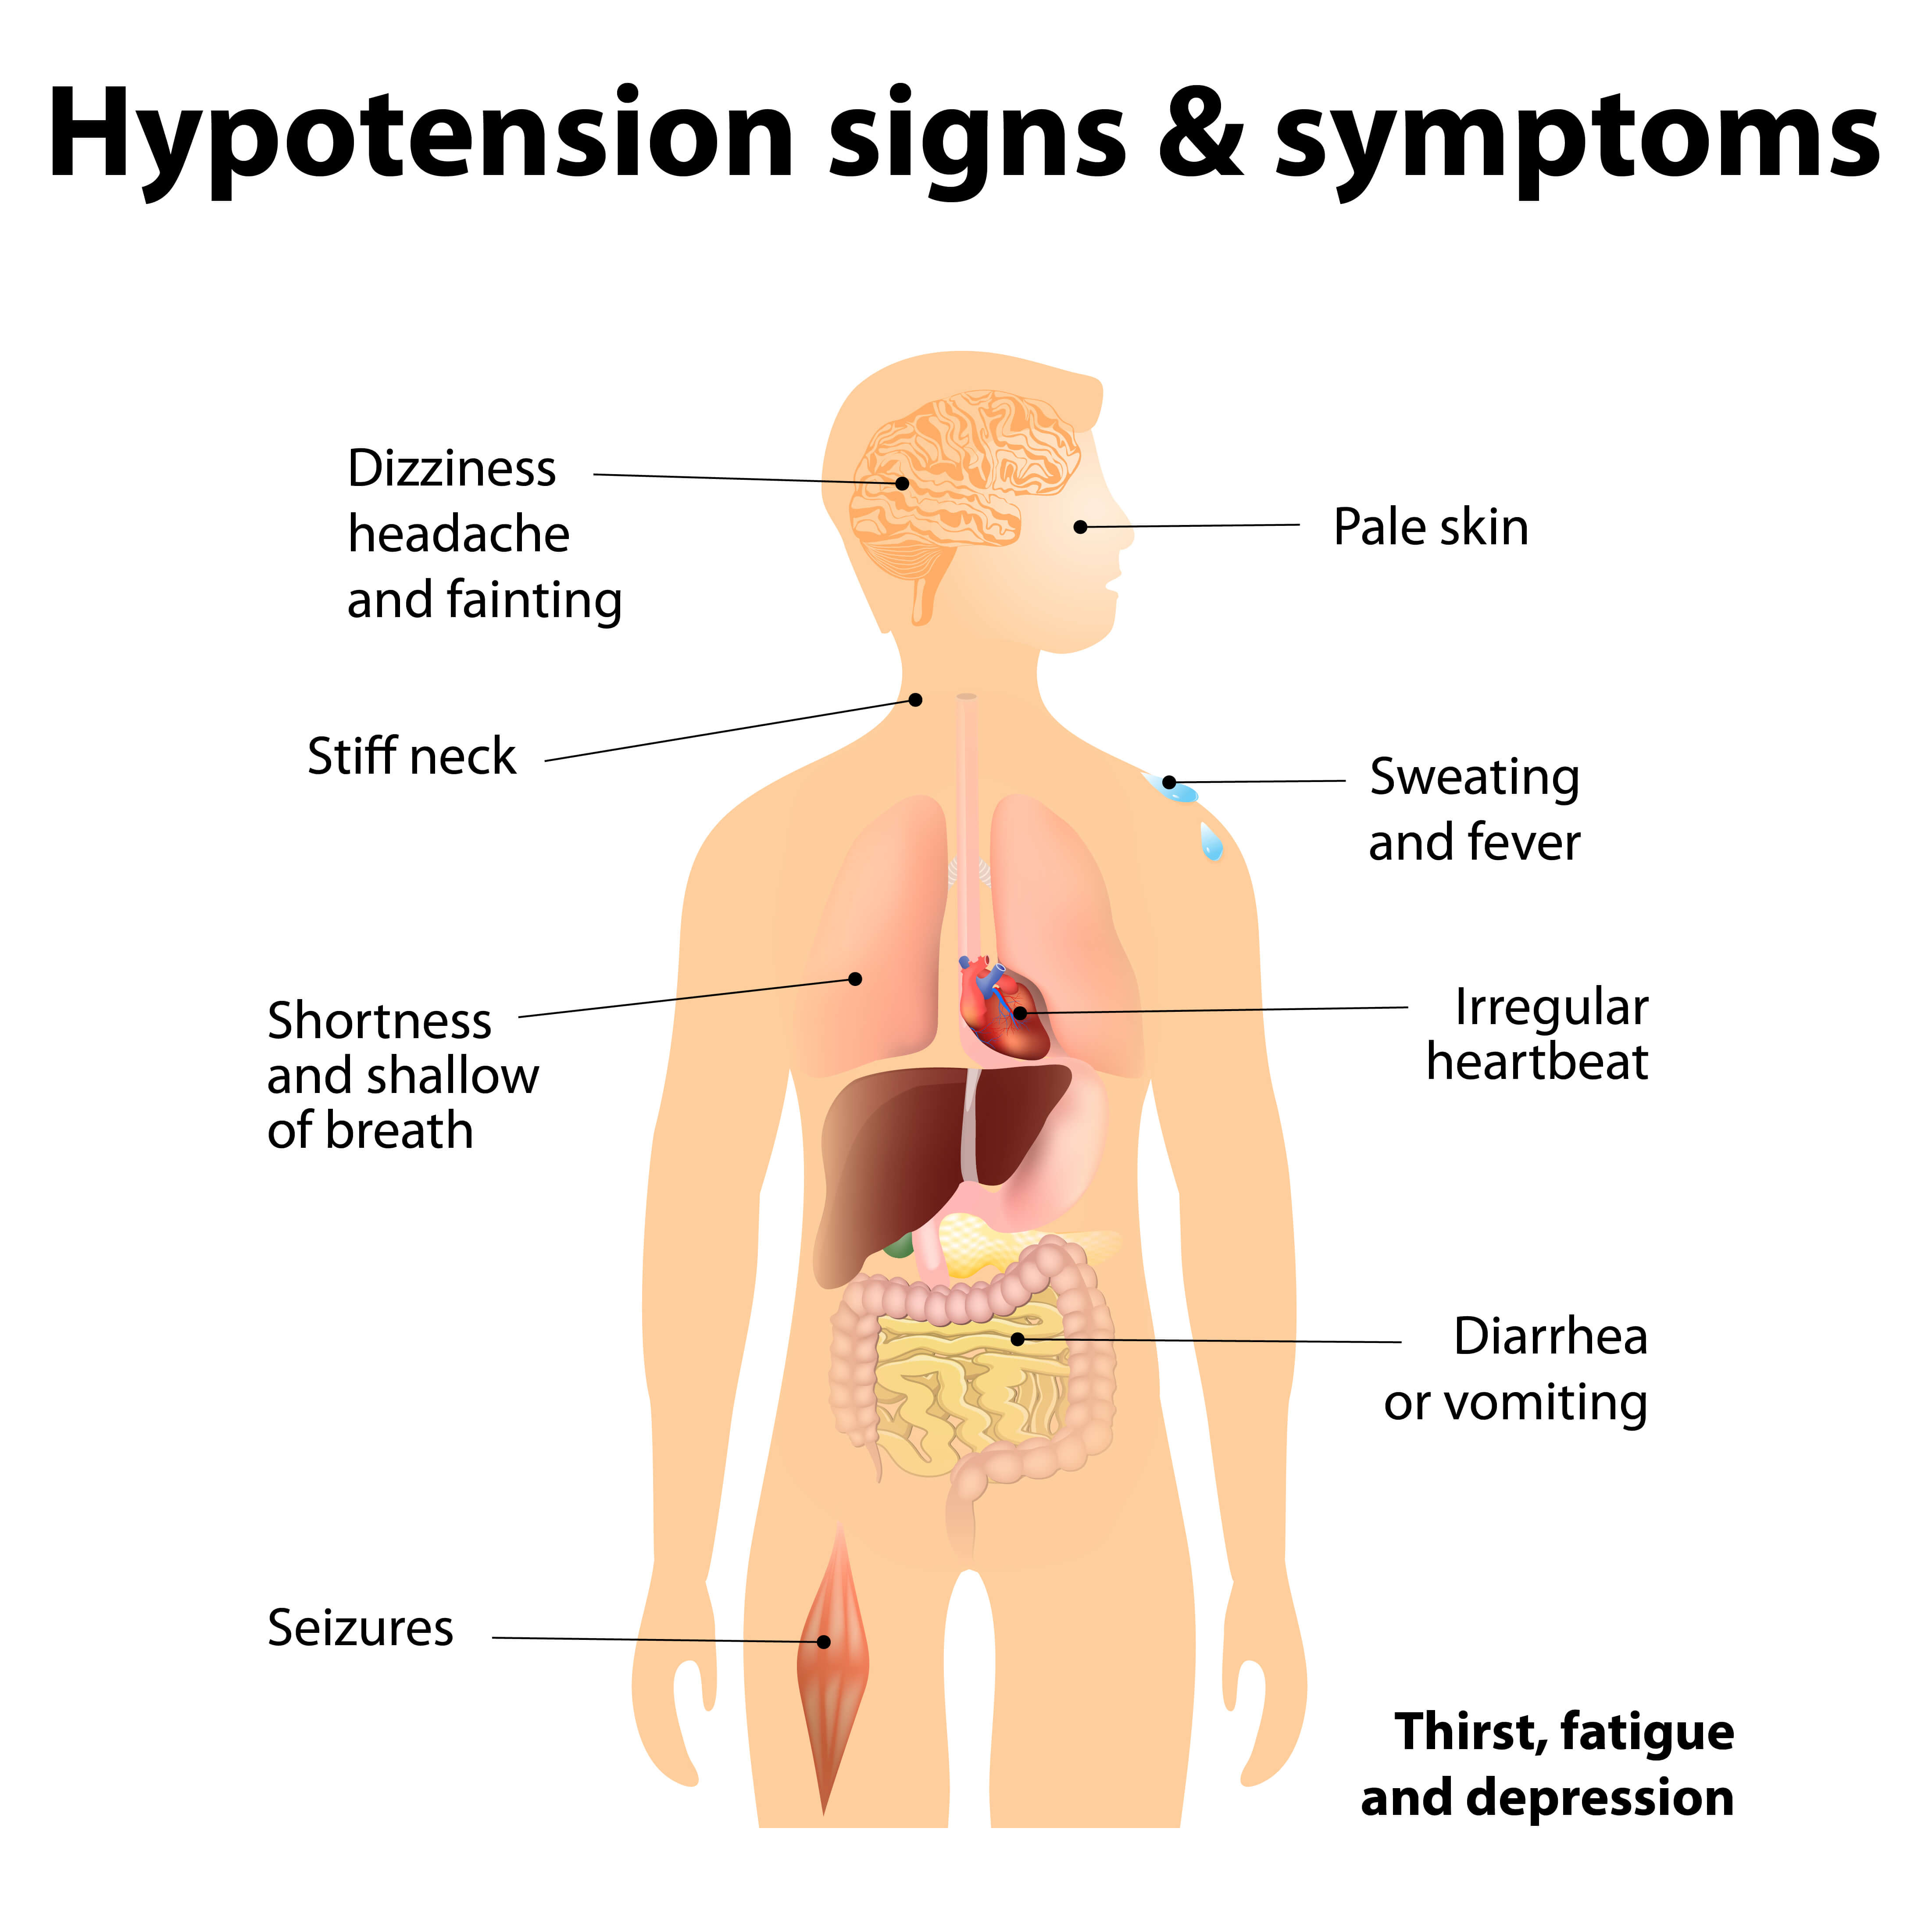 Treatment of chronic hypotension: Detail the protocols for the management of low blood pressure